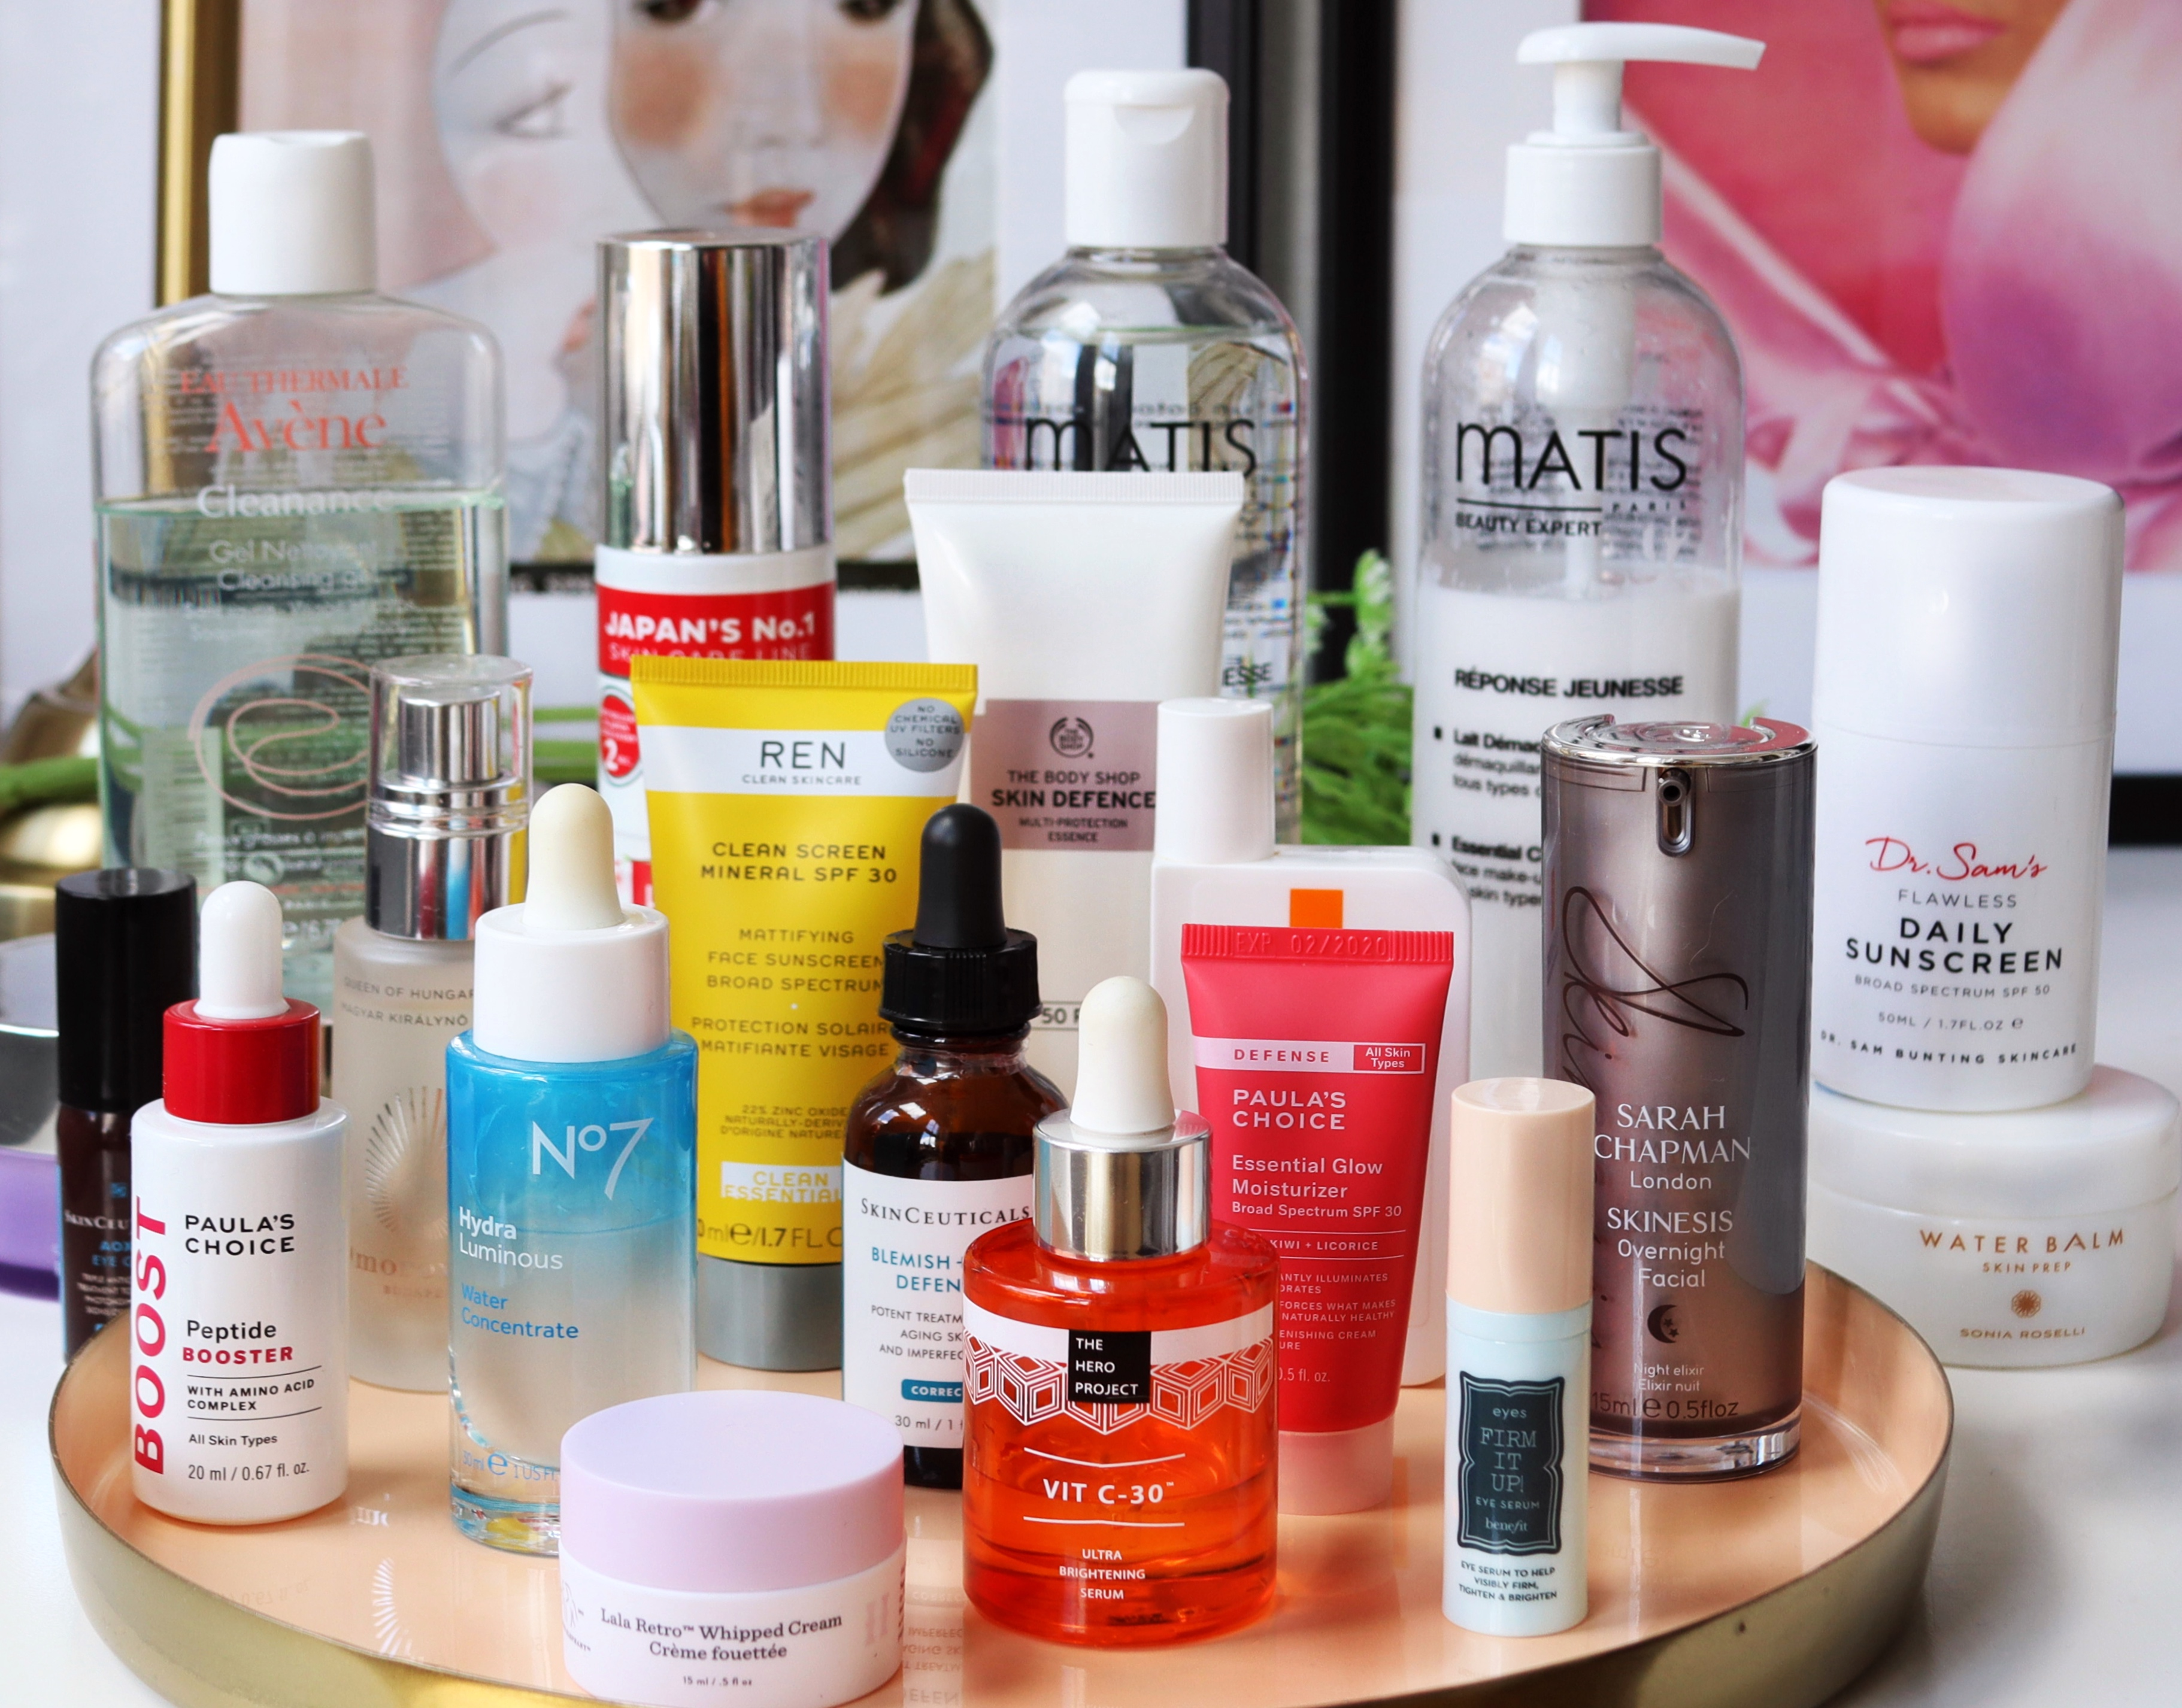 Skincare routine : We all want a perfect, easy one, in this post I'm talking about how to build a basic one. Once you've got that sorted you'll see big changes in your skin and be ready to add more products in should you wish! Image of many items on skincare placed on a tray which is sitting on a desk as examples of items you can choose for a skincare routine.